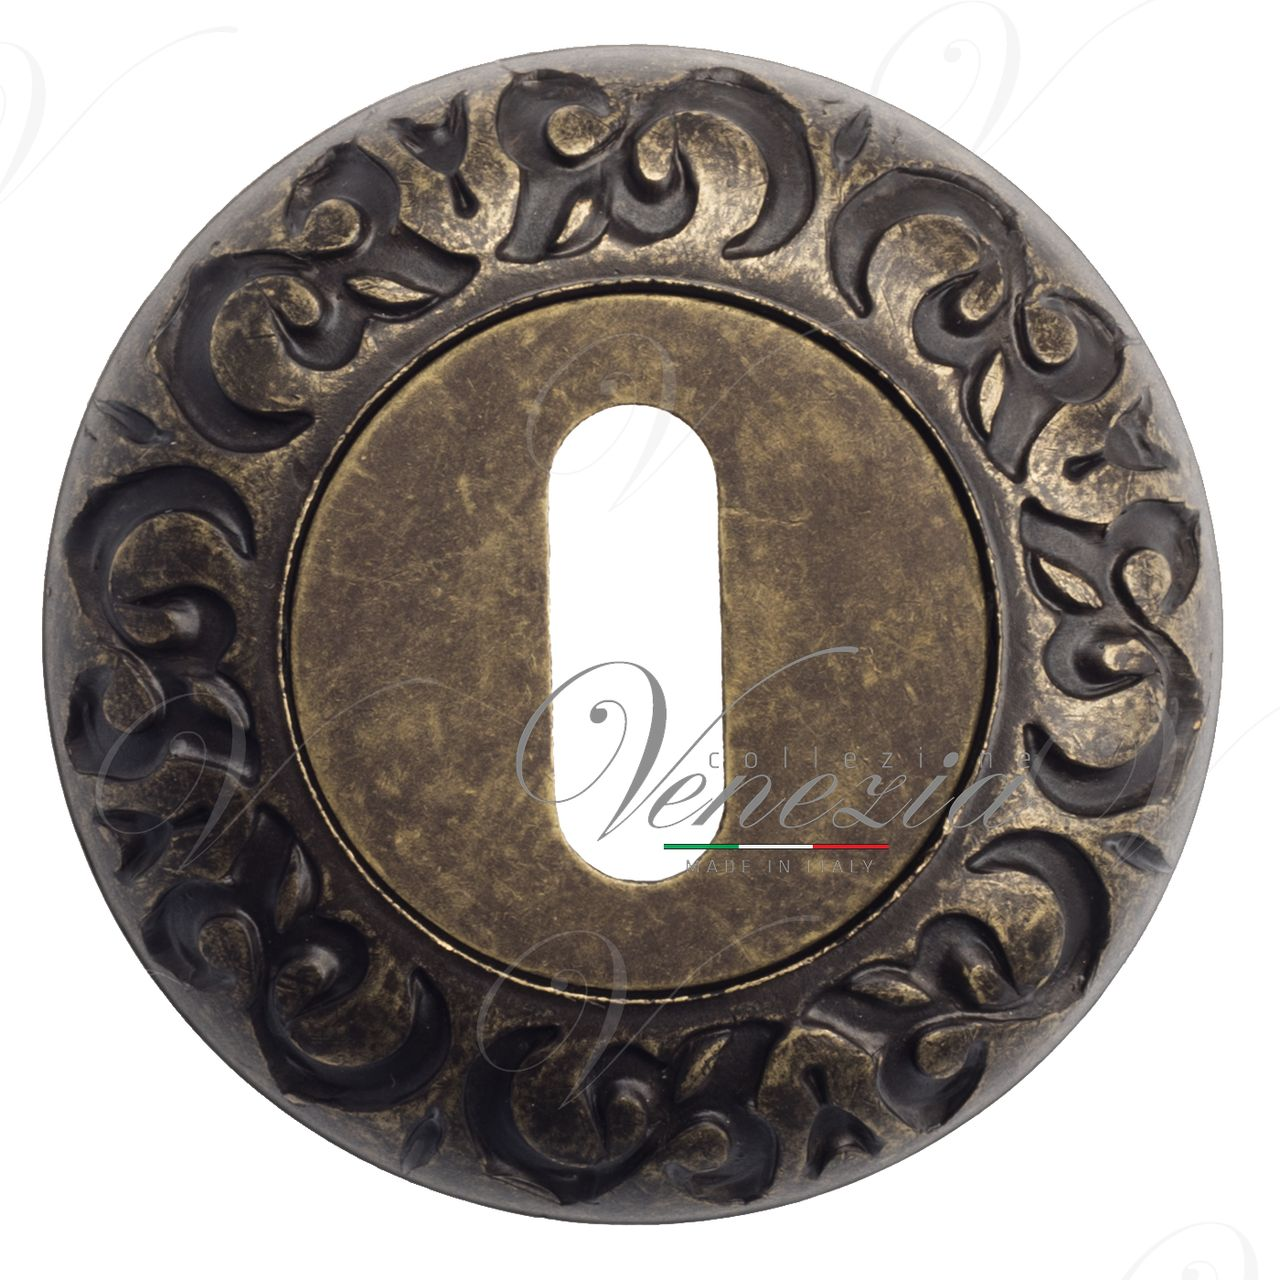 Keyhole Escutcheon Venezia KEY-1 D4 Antique Bronze